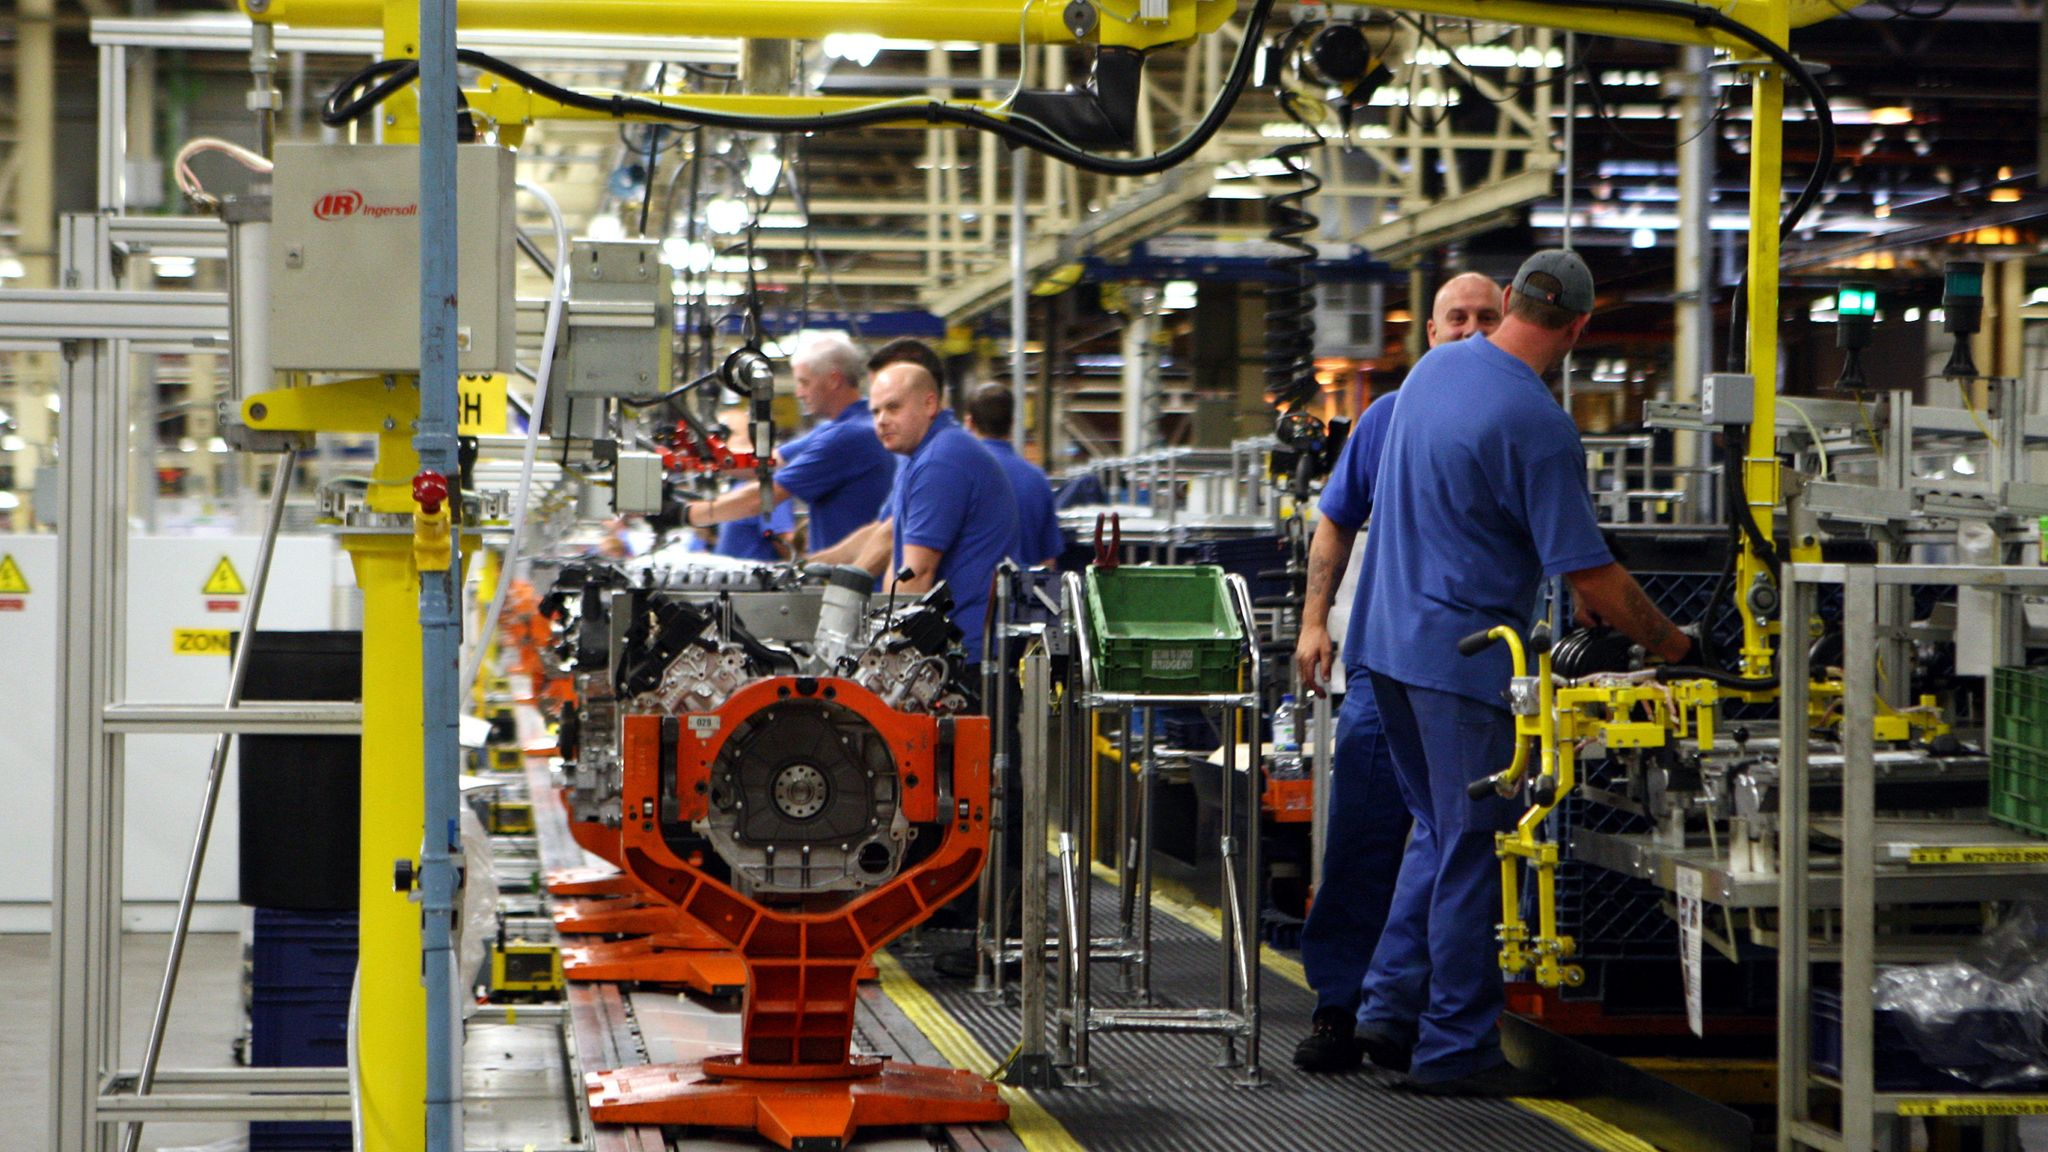 Fears for 1,700 jobs as Ford set to close Bridgend plant